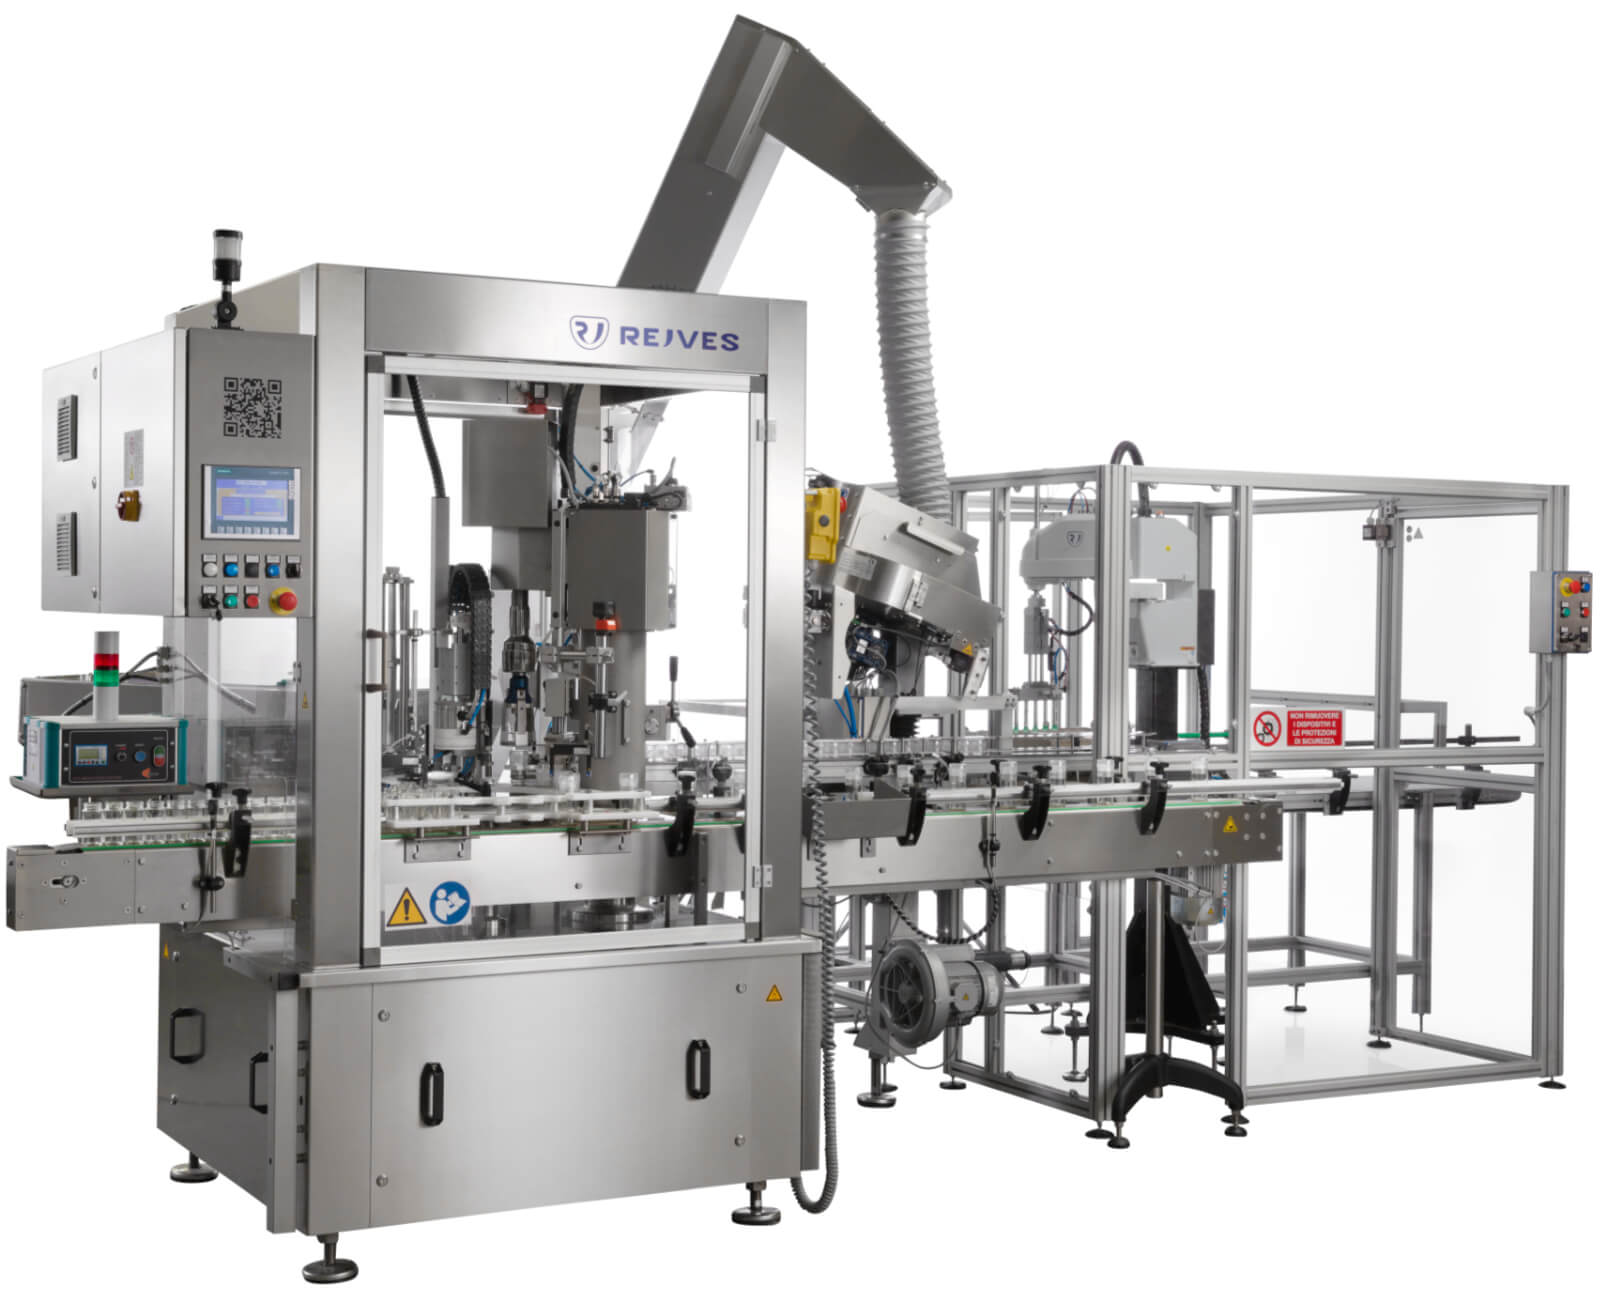 rejves machinery capping machine